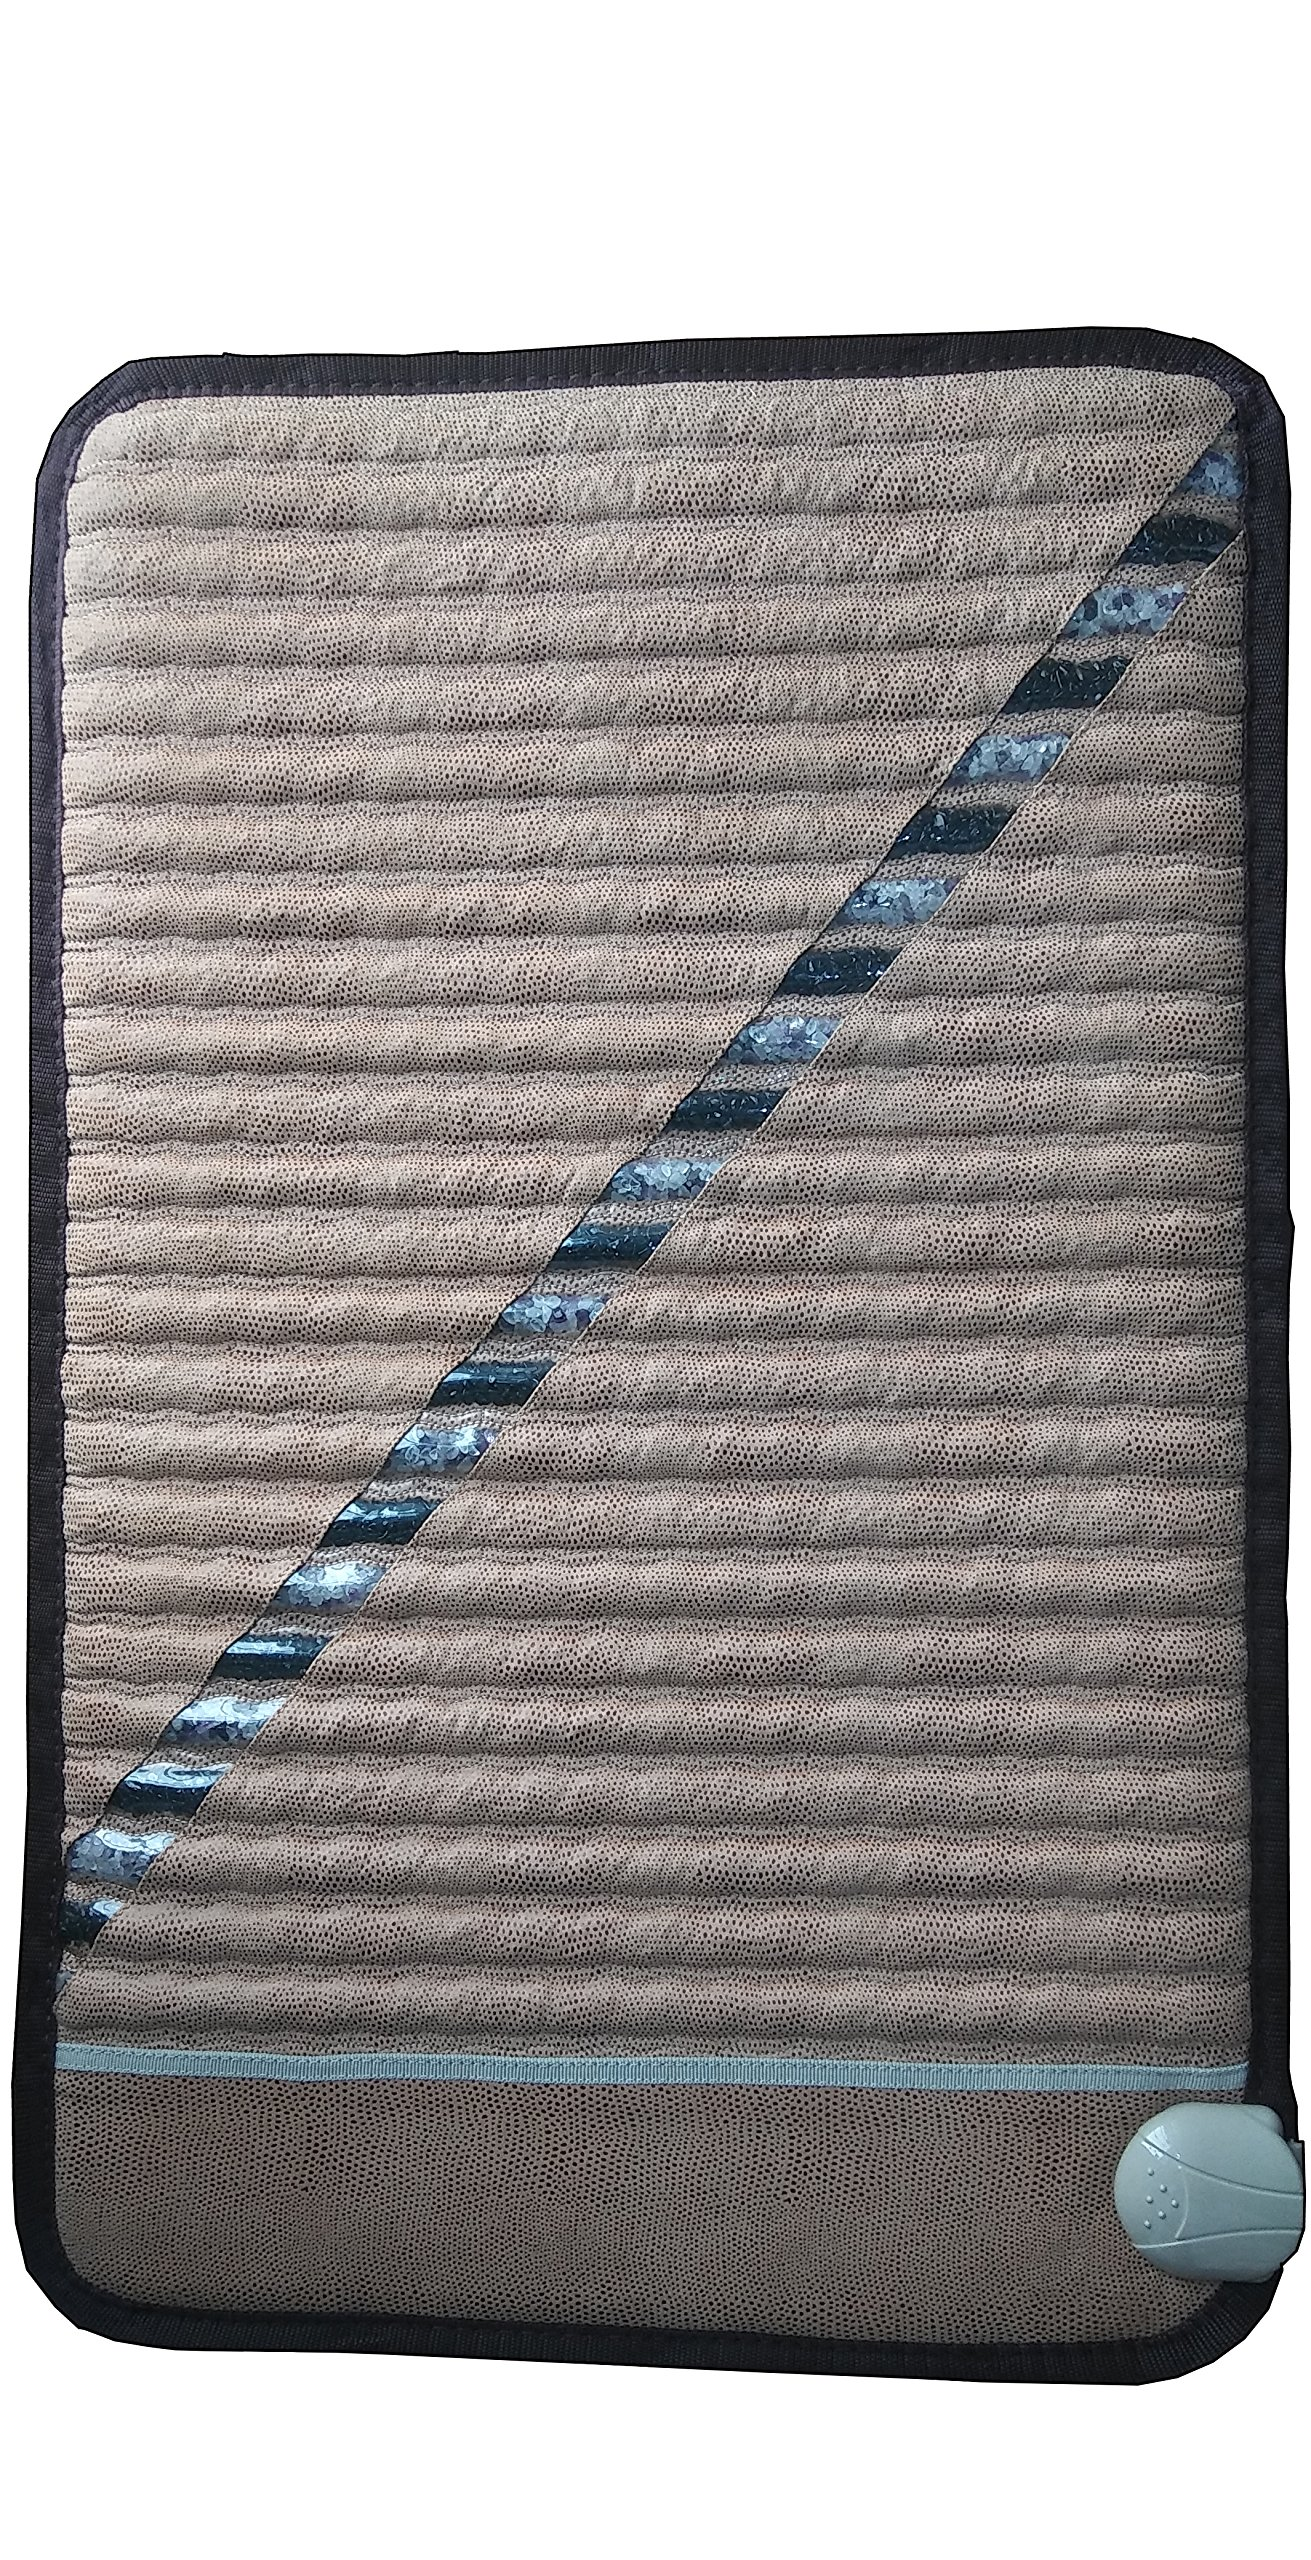 Far Infrared Ray Heat Therapy Amethyst and Tourmaline Mini (31'' x 20'') Mat-Free Cover-FDA Registered-Adjustable Temp Setting by Infrared Mat